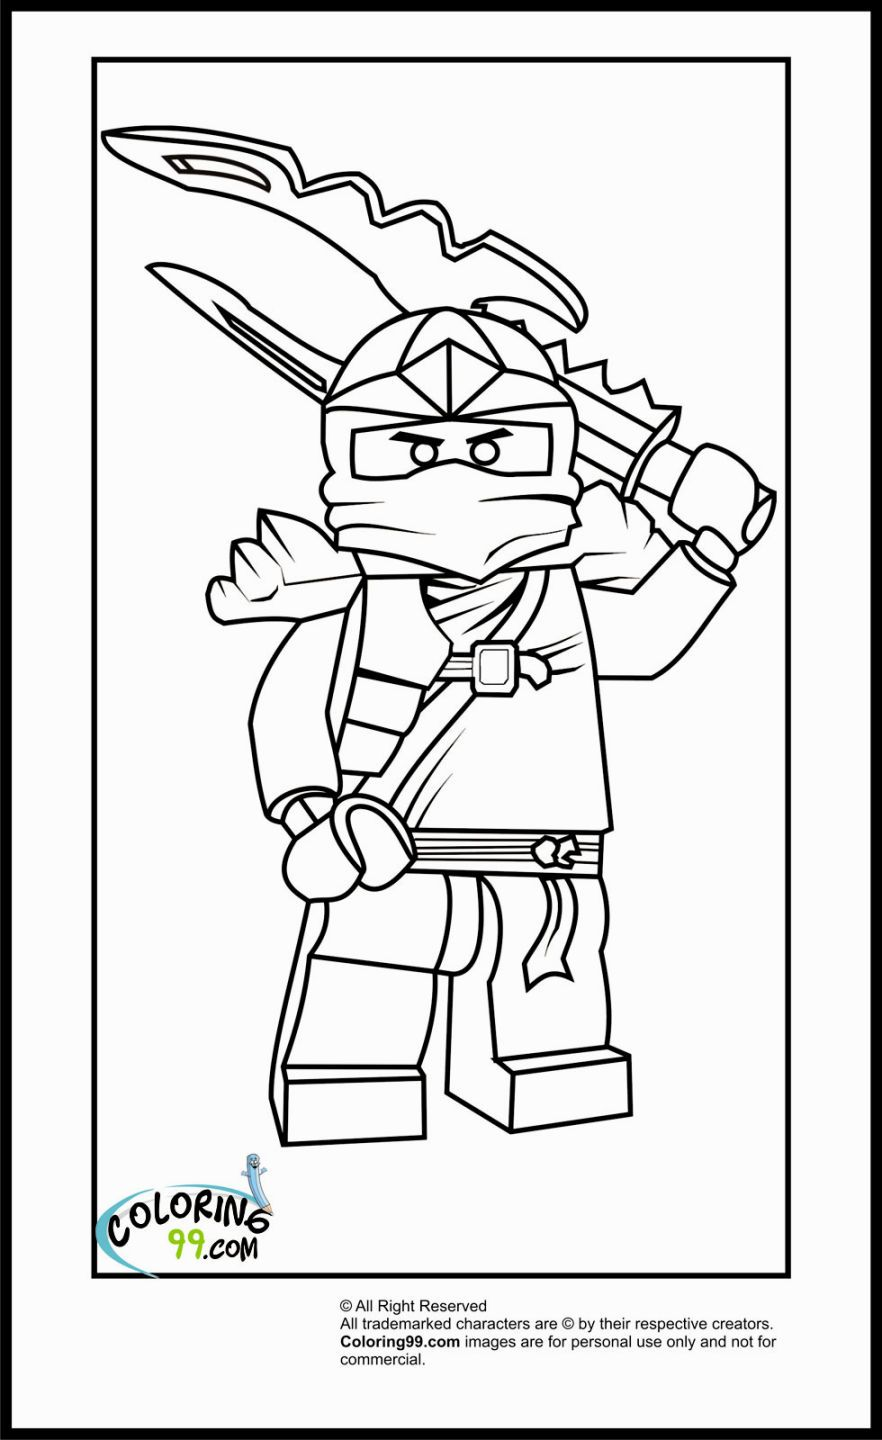 8 Coloring Pages Ninjago Coloring Pages Lego Coloring Pages Lego Coloring